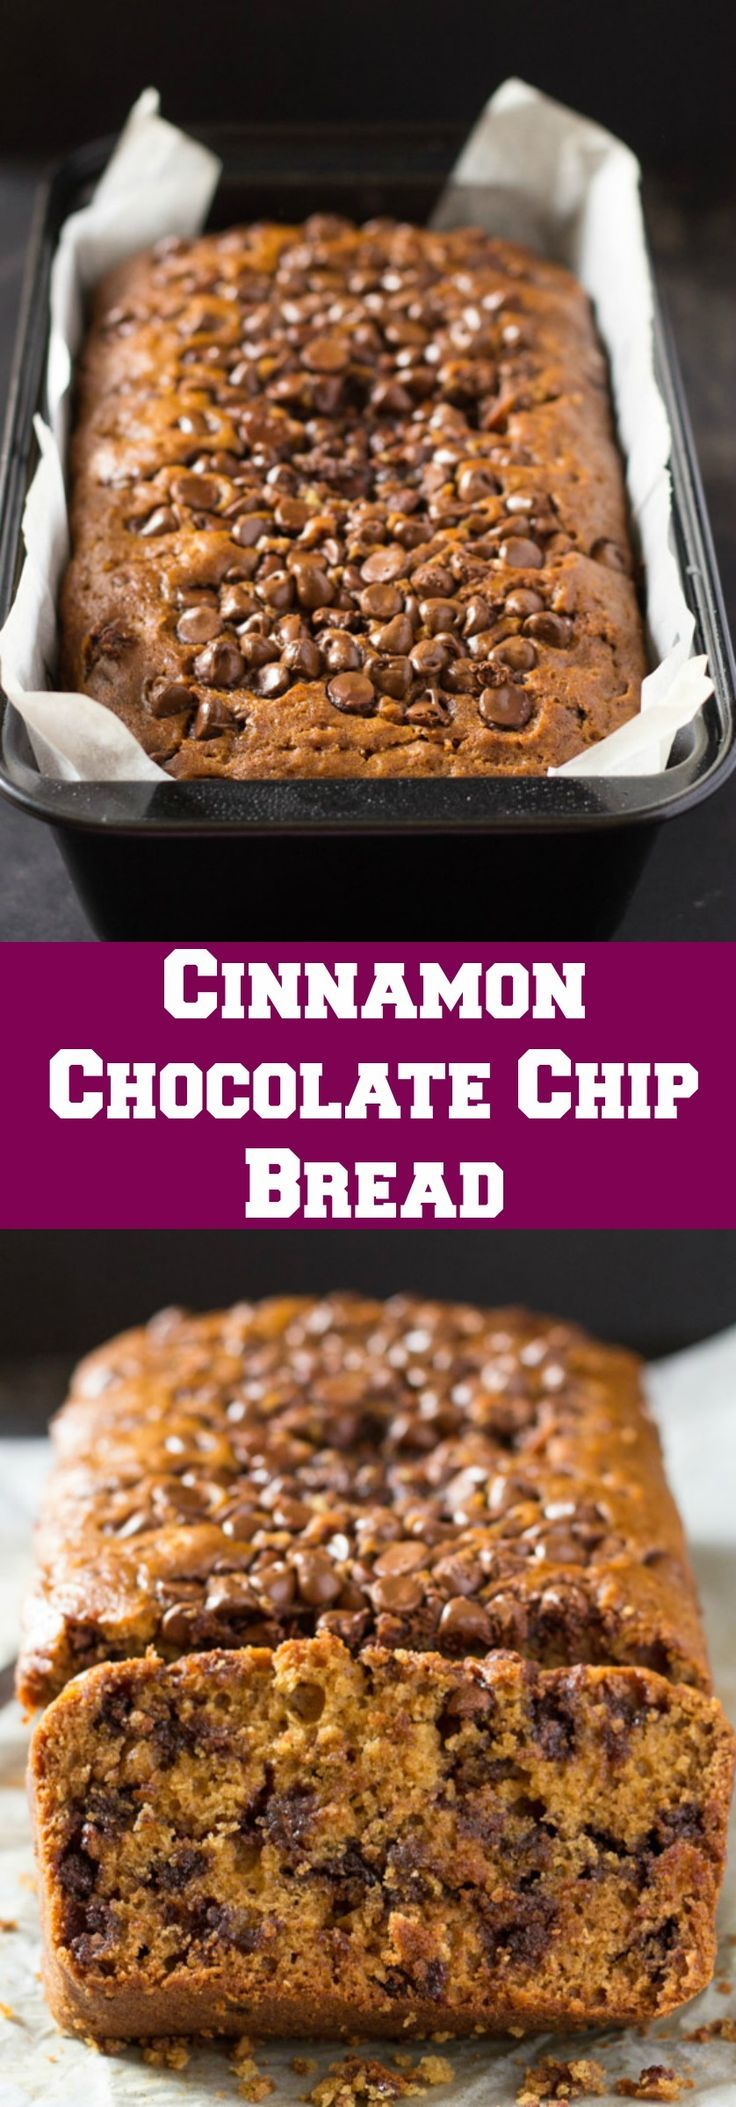 Best 10+ Chocolate chip bread ideas on Pinterest | Chocolate ...